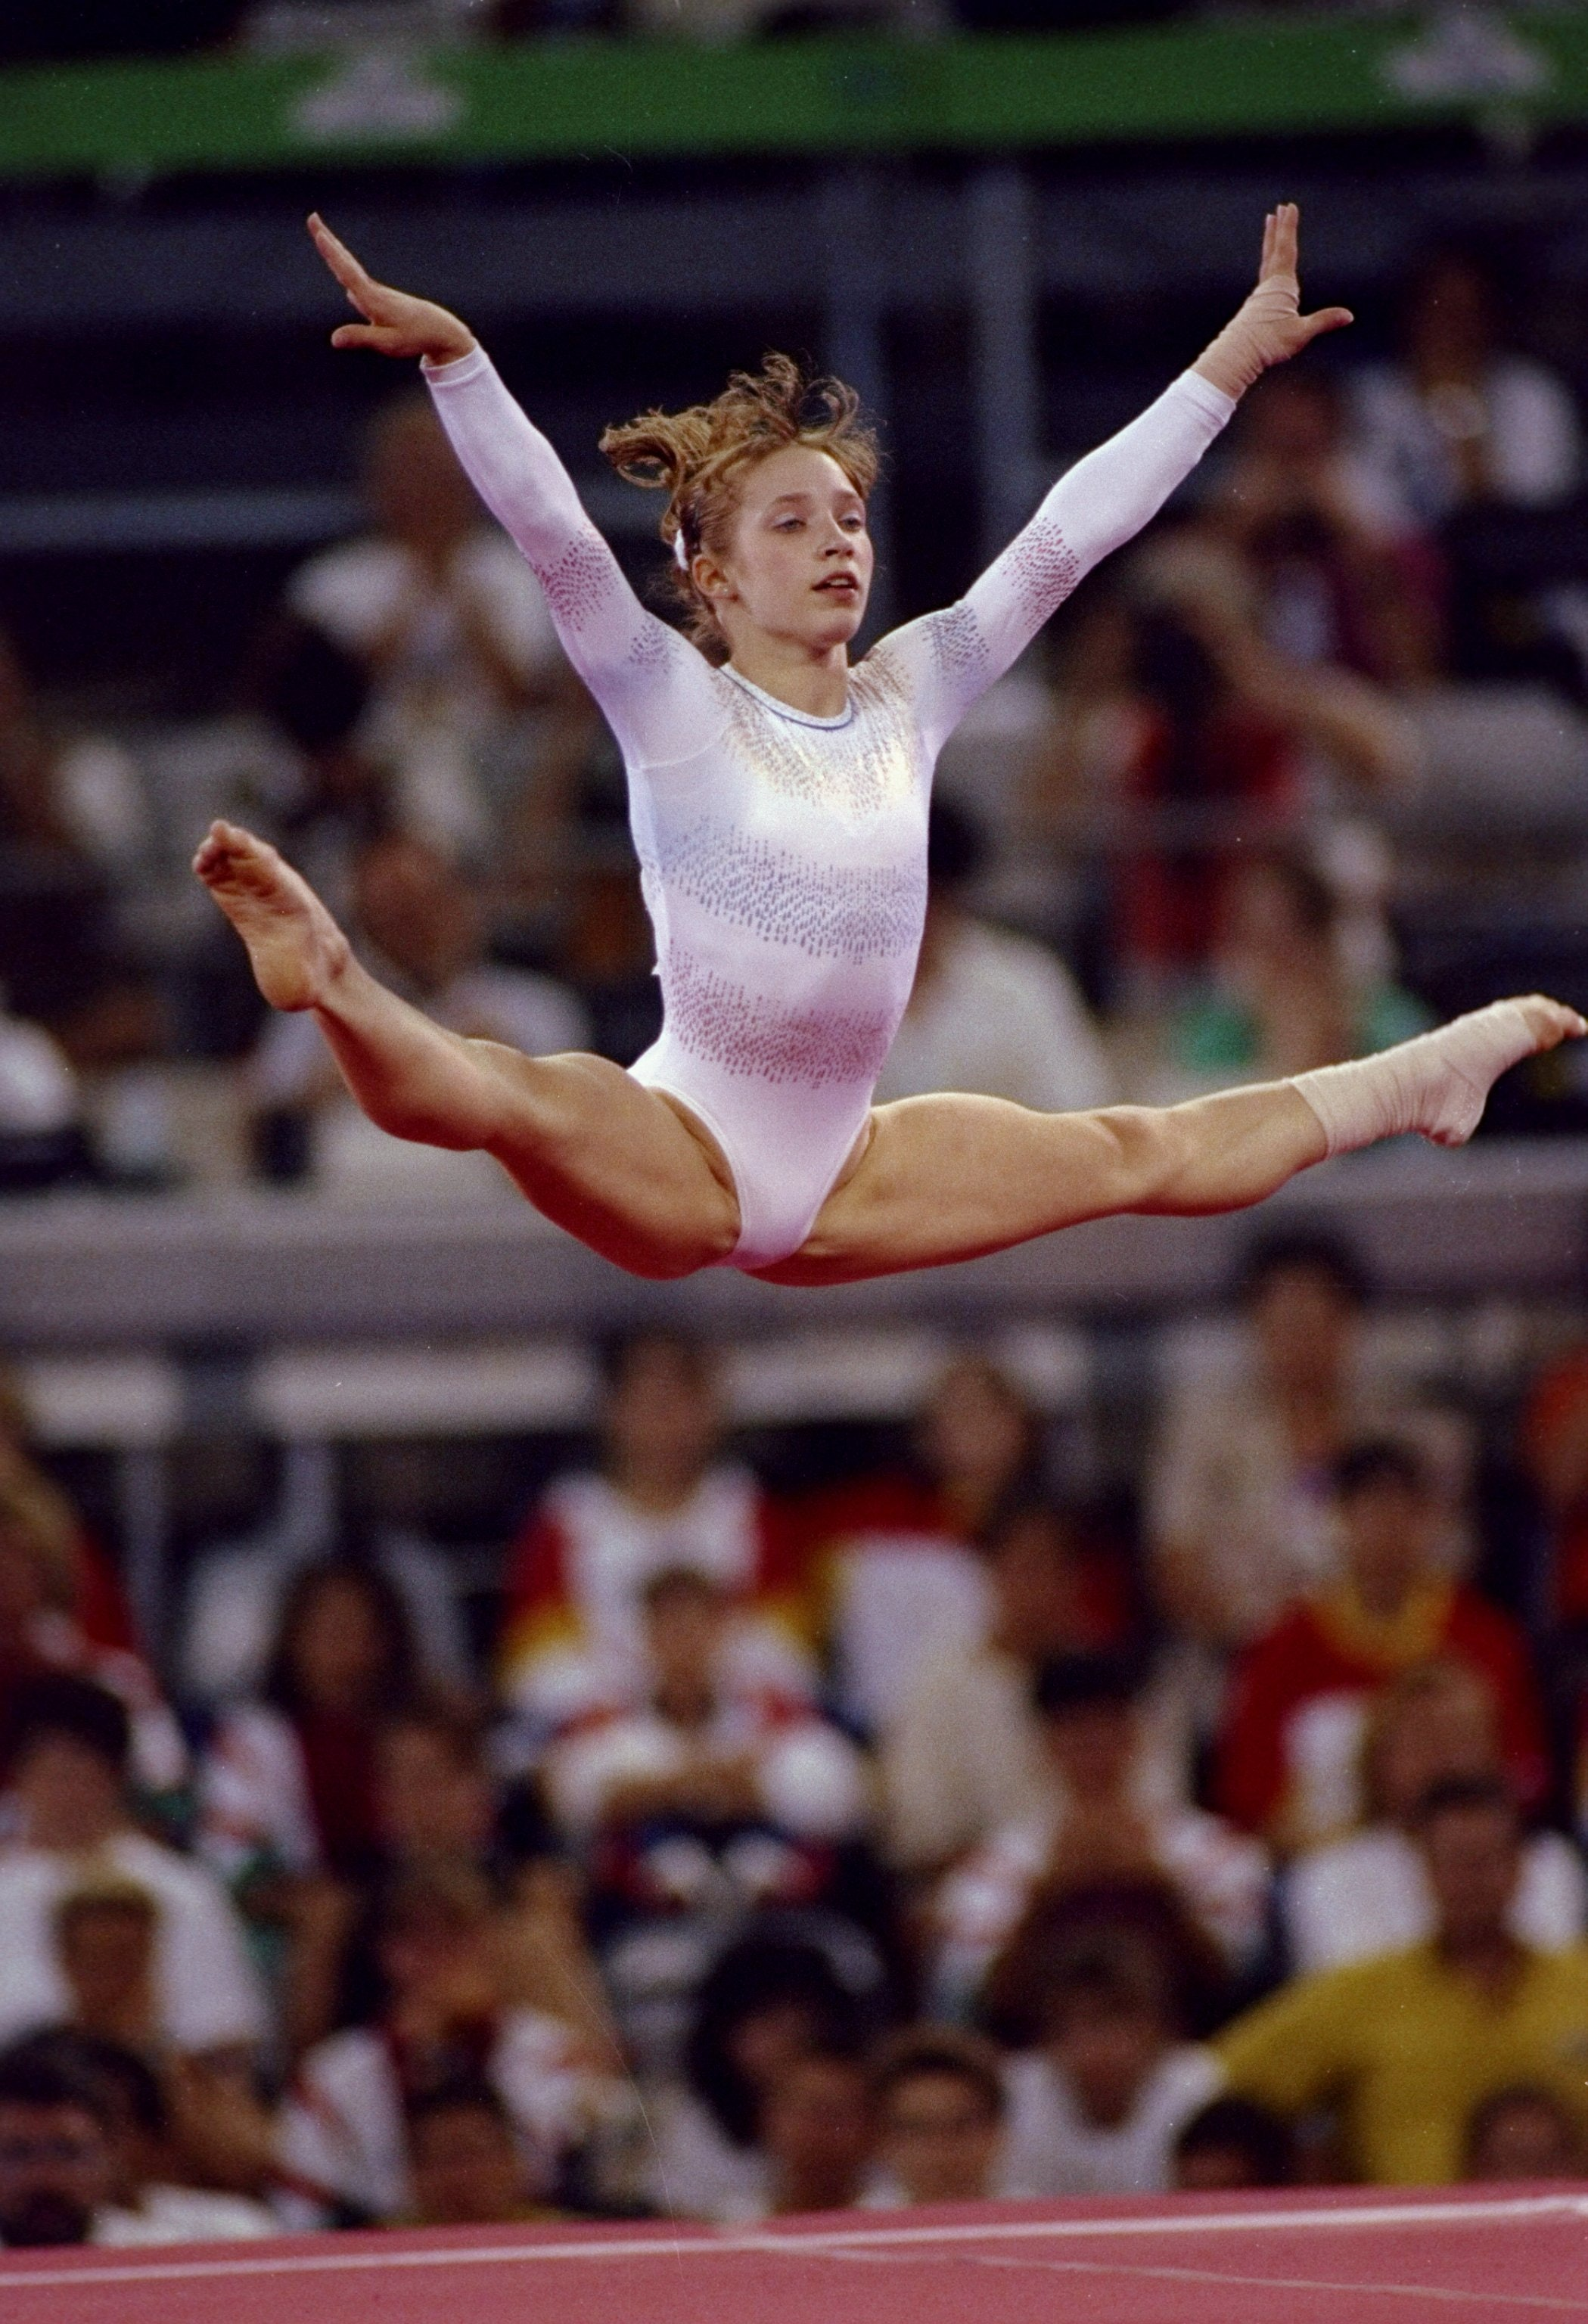 The series Gymnasts: actors and roles